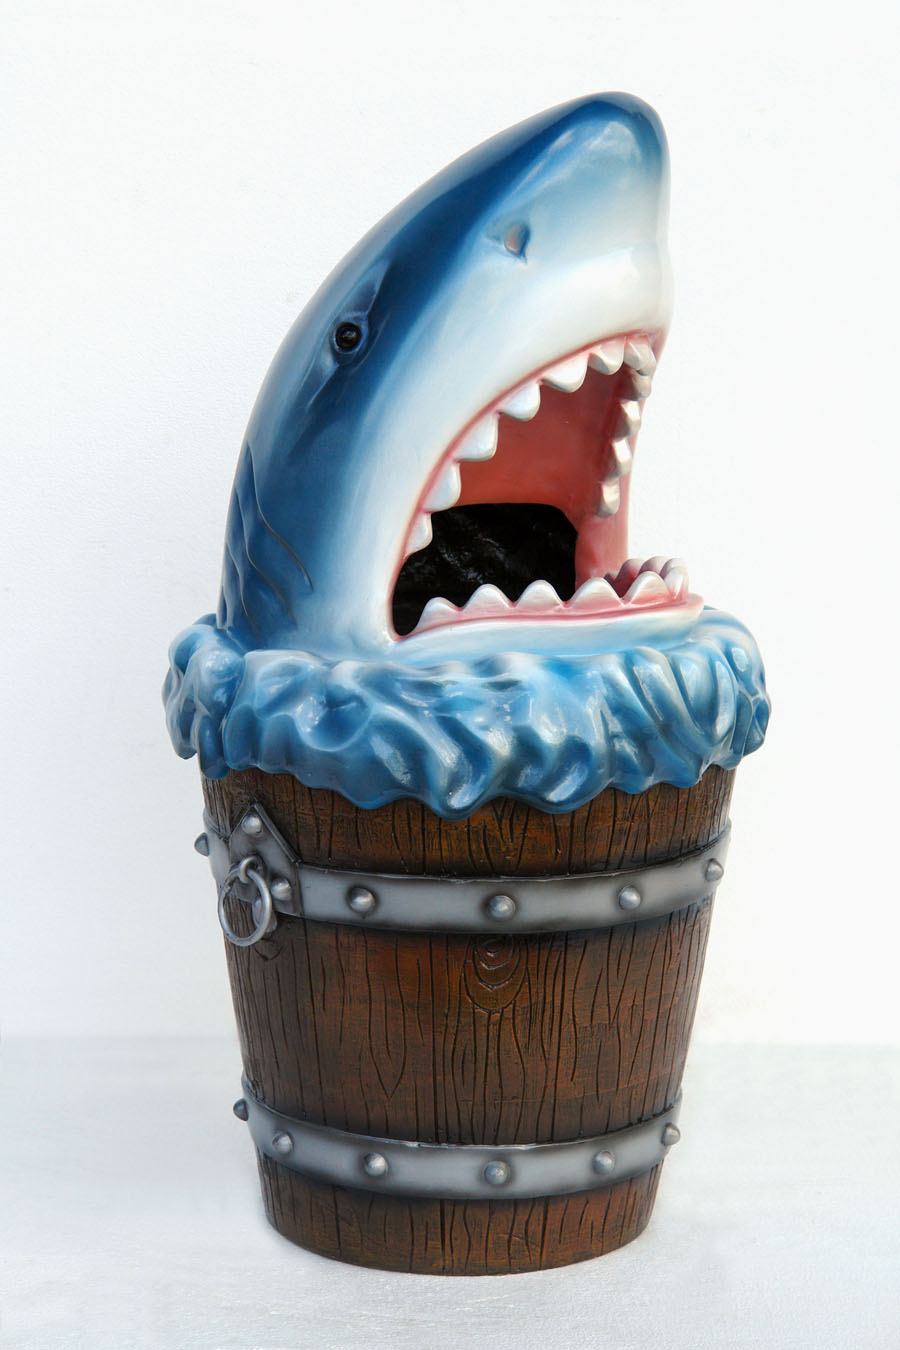 Shark Head Garbage Bin